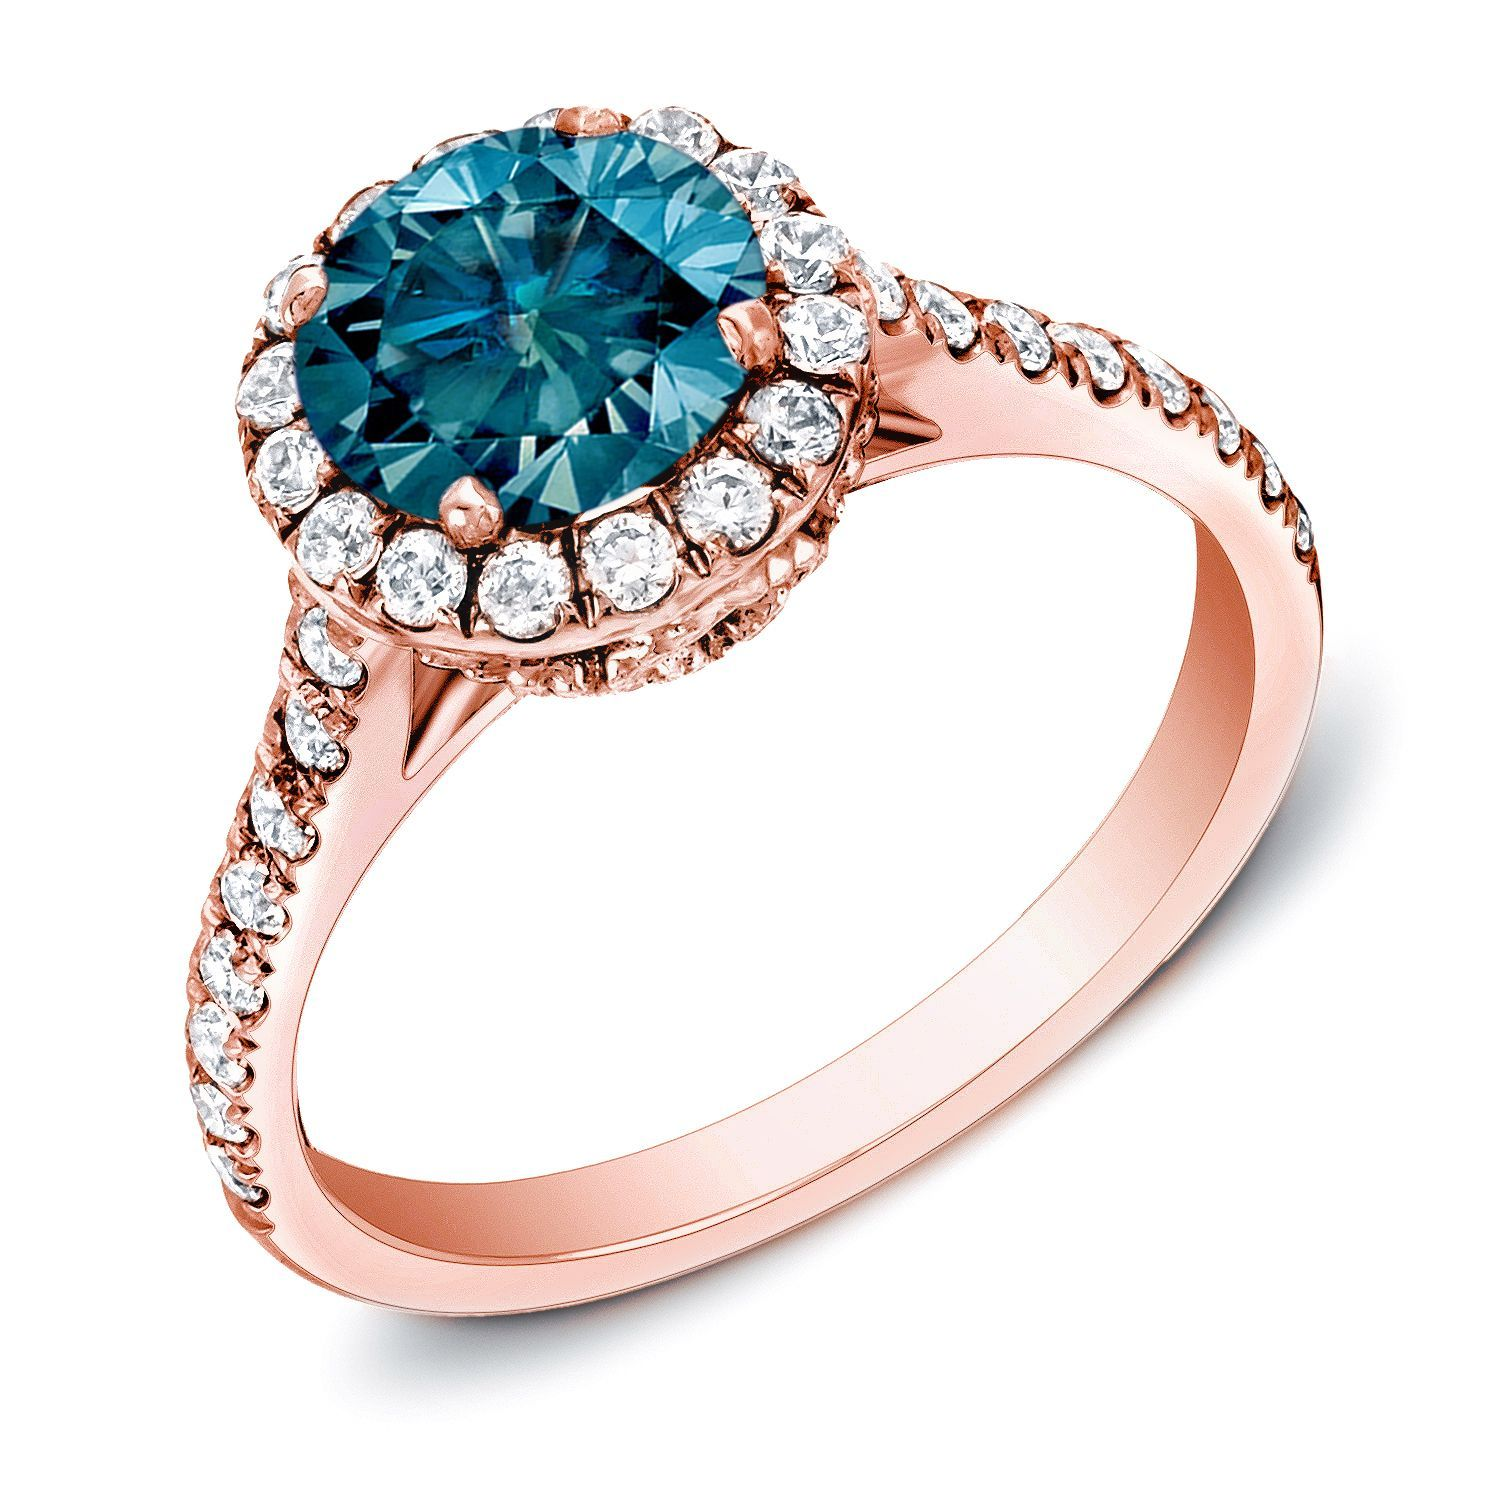 liRoundcut blue diamond halo engagement ringli li14karat